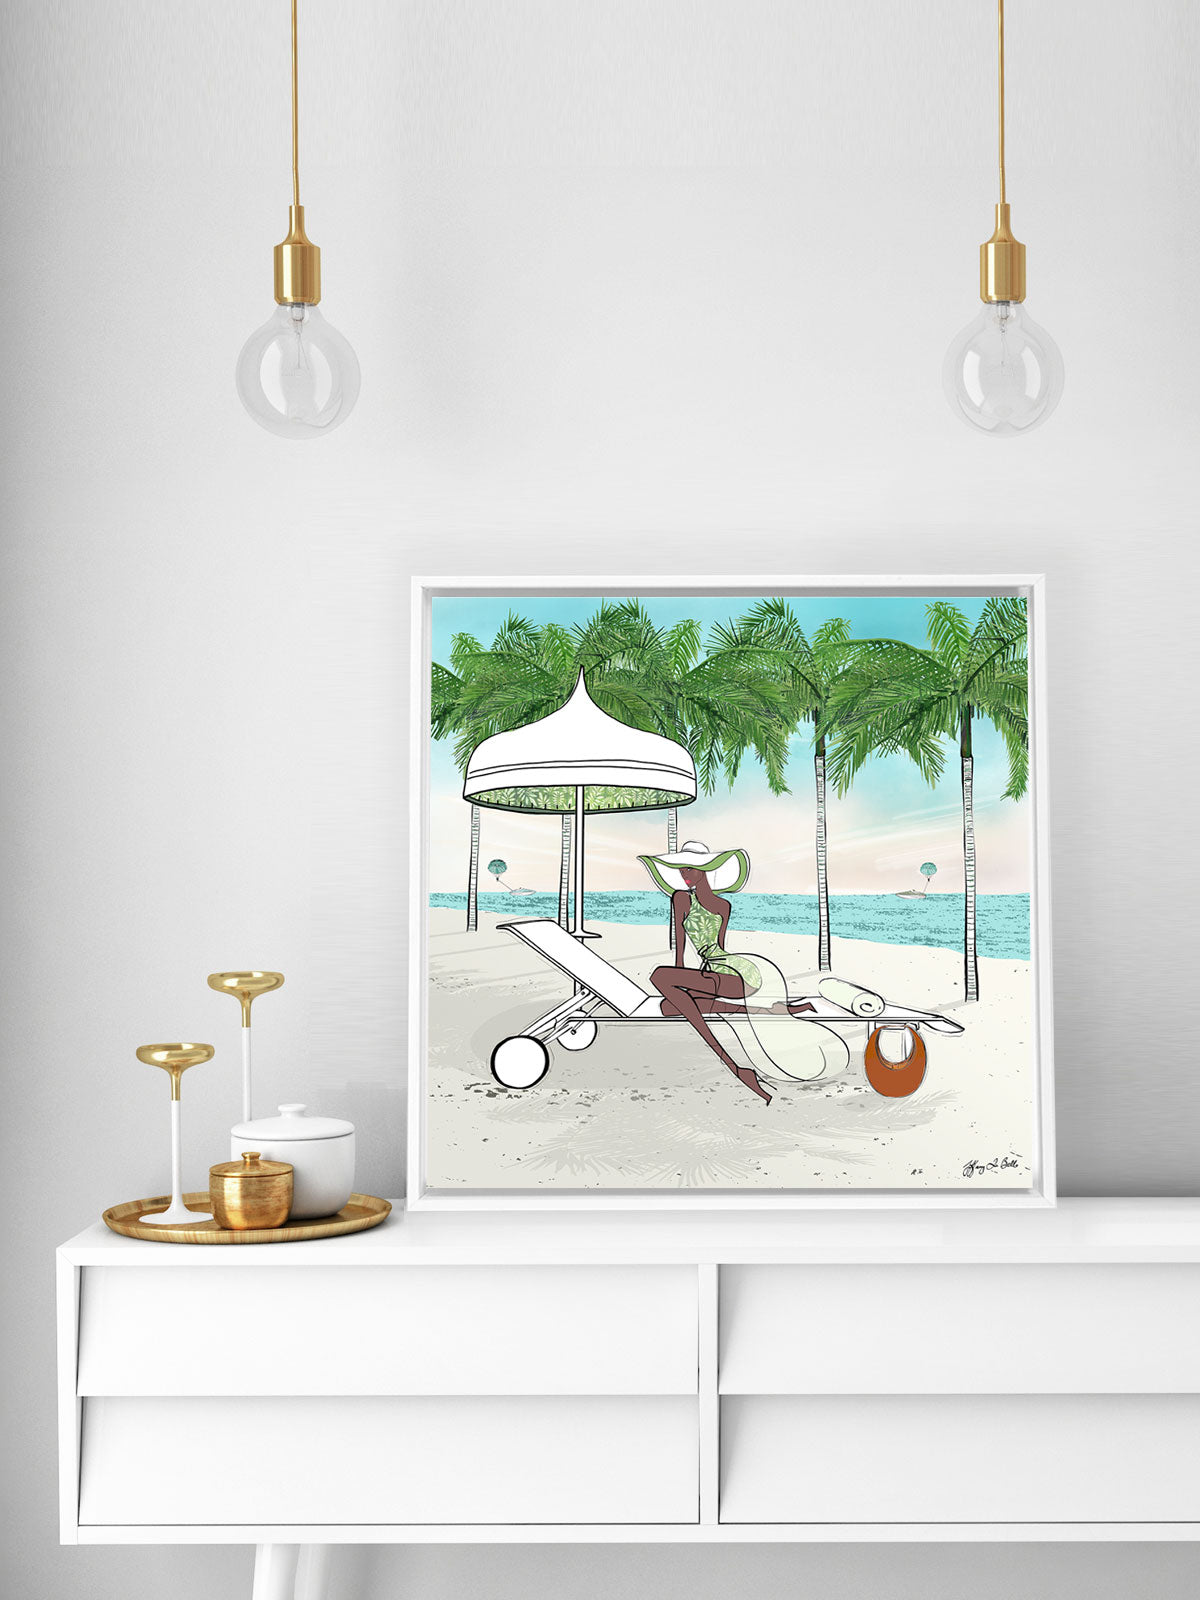 Palm Tree Beach - Illustration - Canvas Gallery Print - Unframed or Framed - Tiffany La Belle